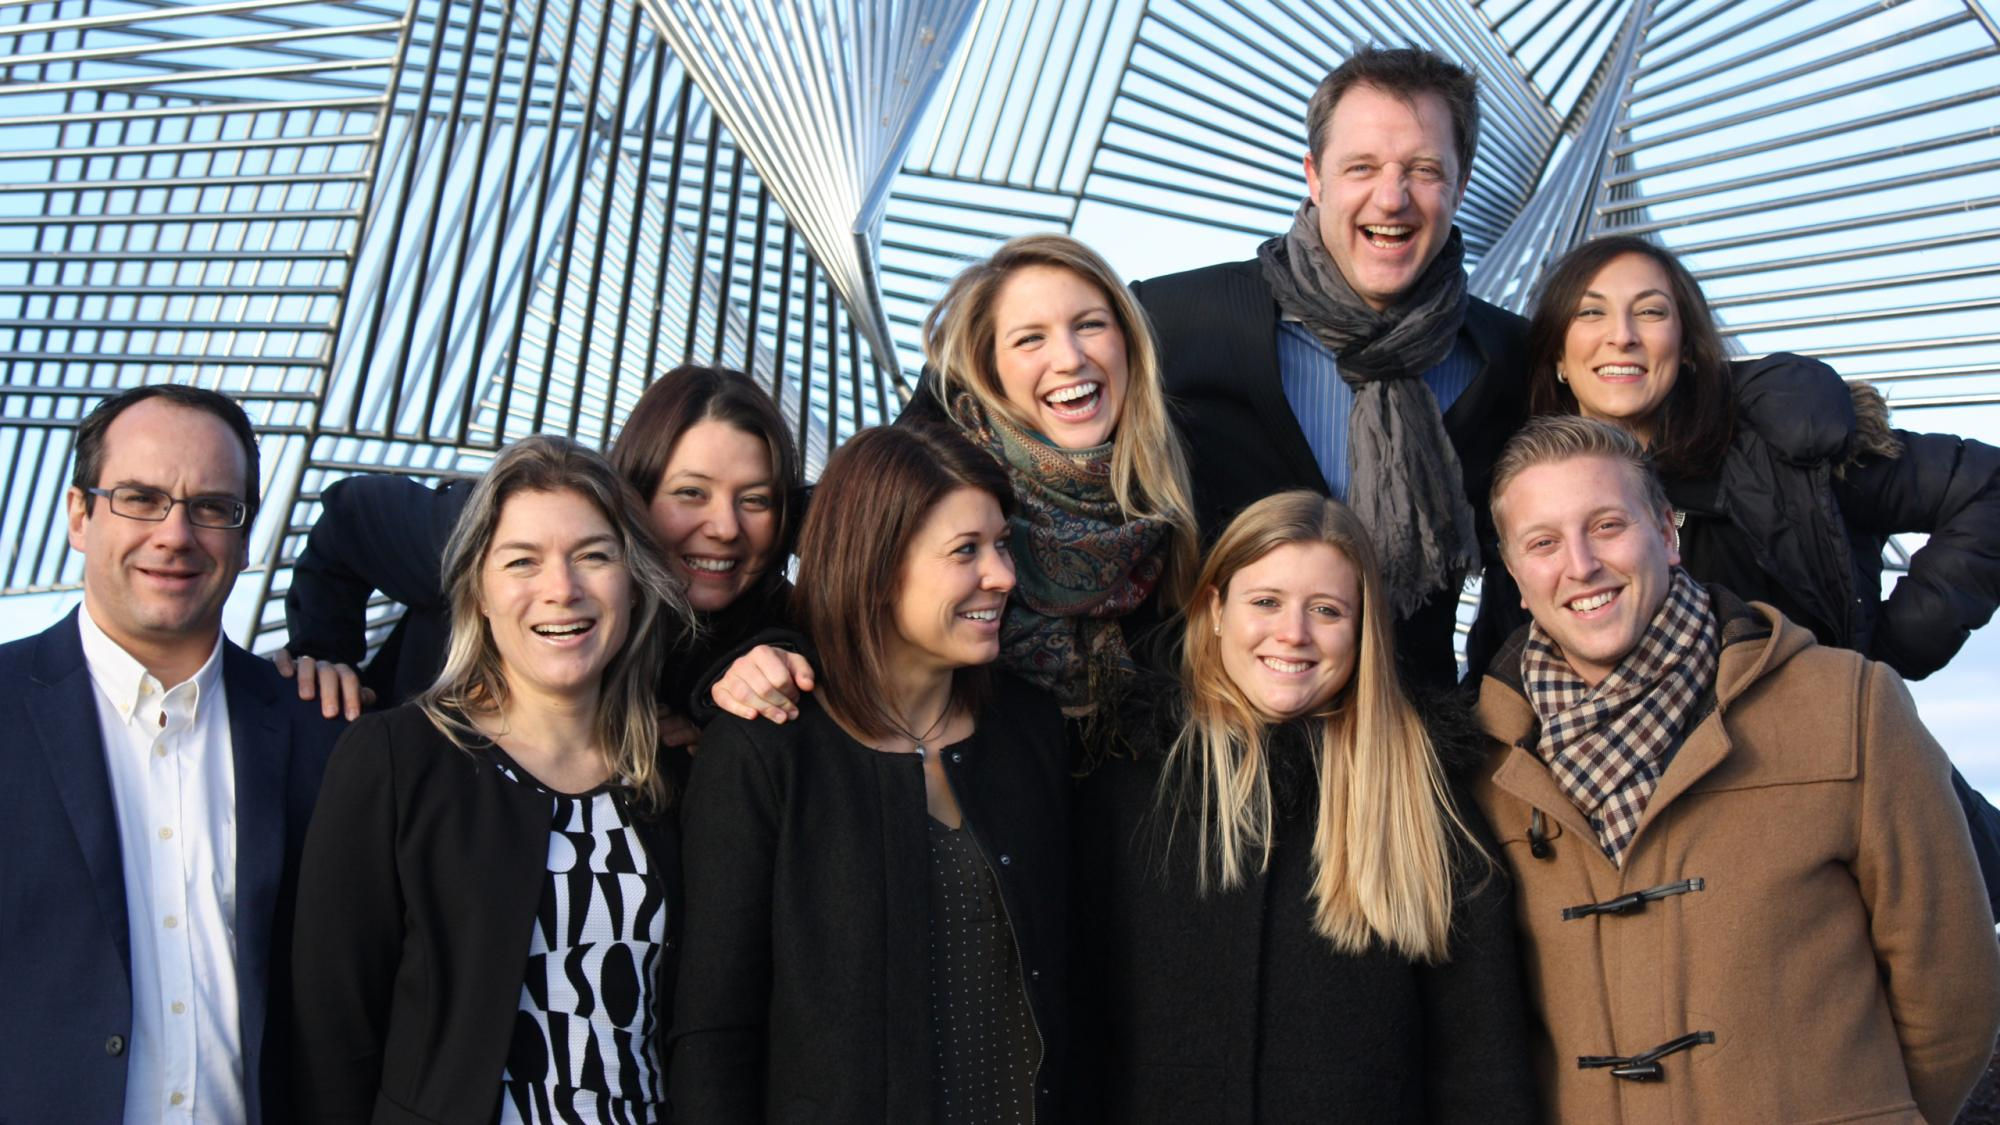 Das Marketing Team von Lausanne Tourisme - © Lausanne Tourisme